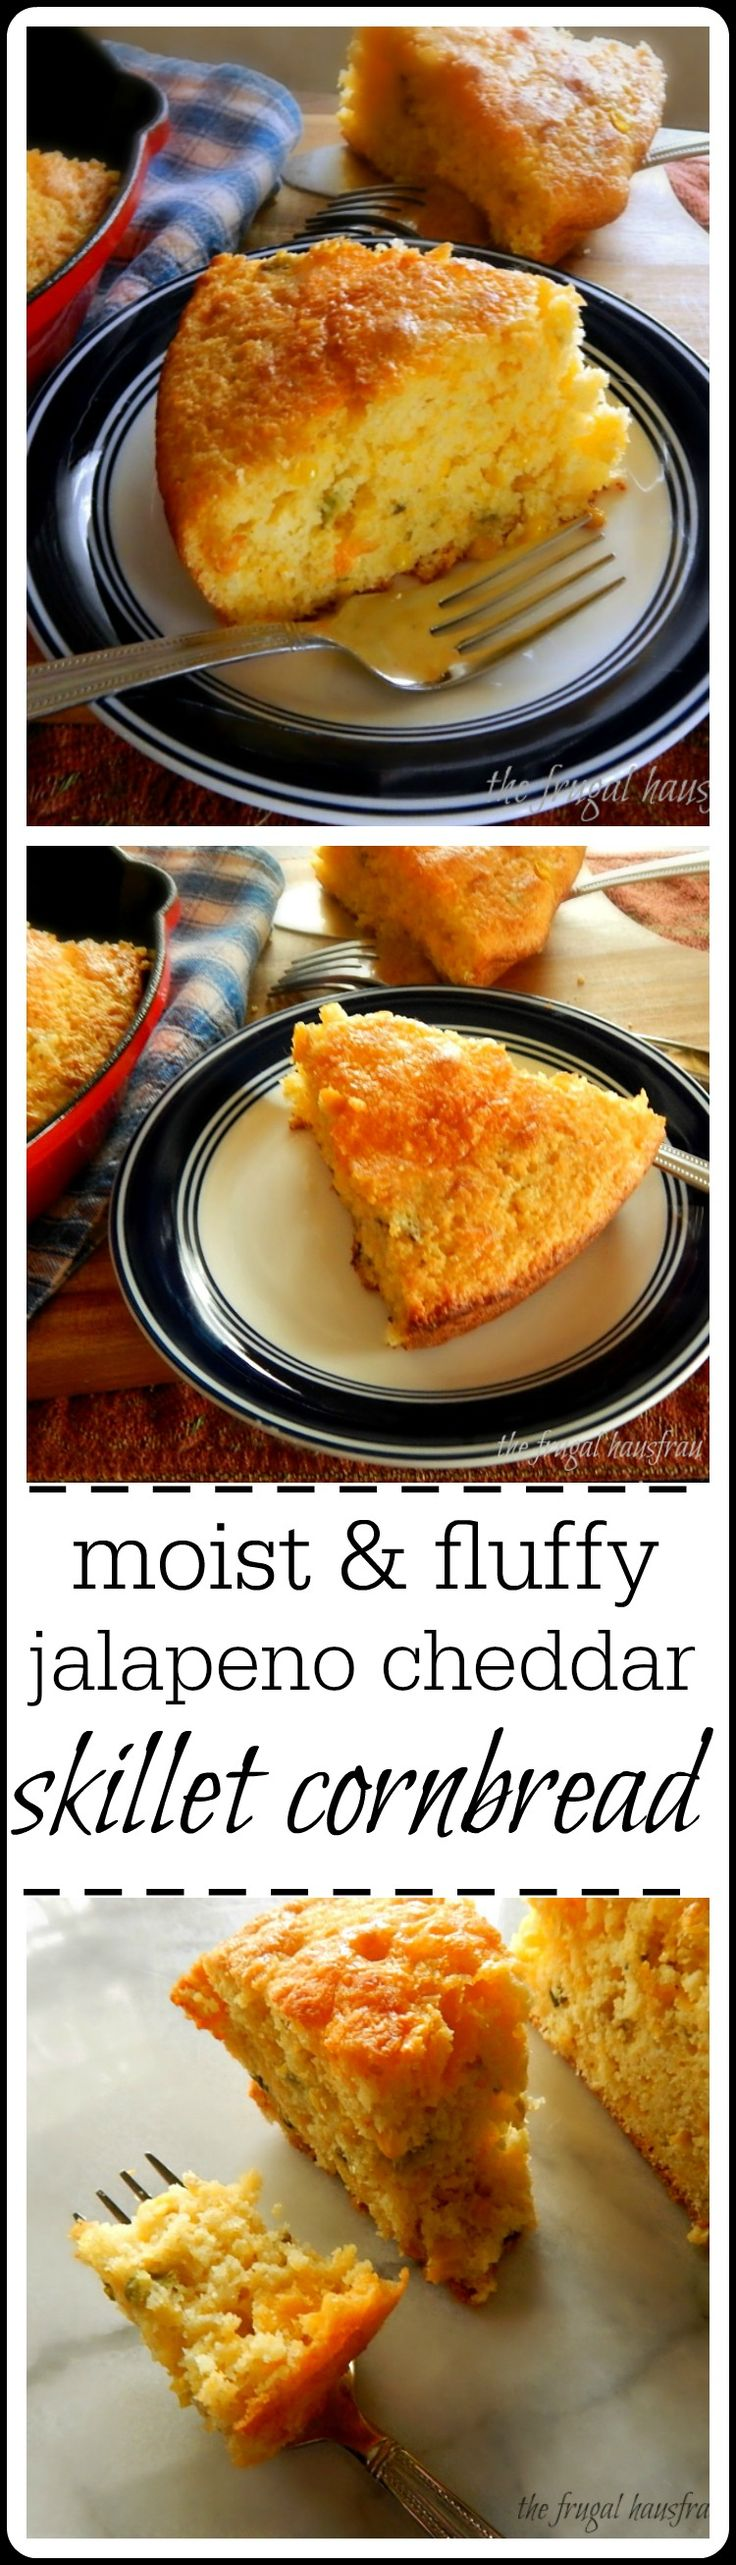 This easy Skillet Cornbread is super moist, light fluffy and cheesy with a bit of a bite from the roasted jalapeno. You won't be able to stop eating it!